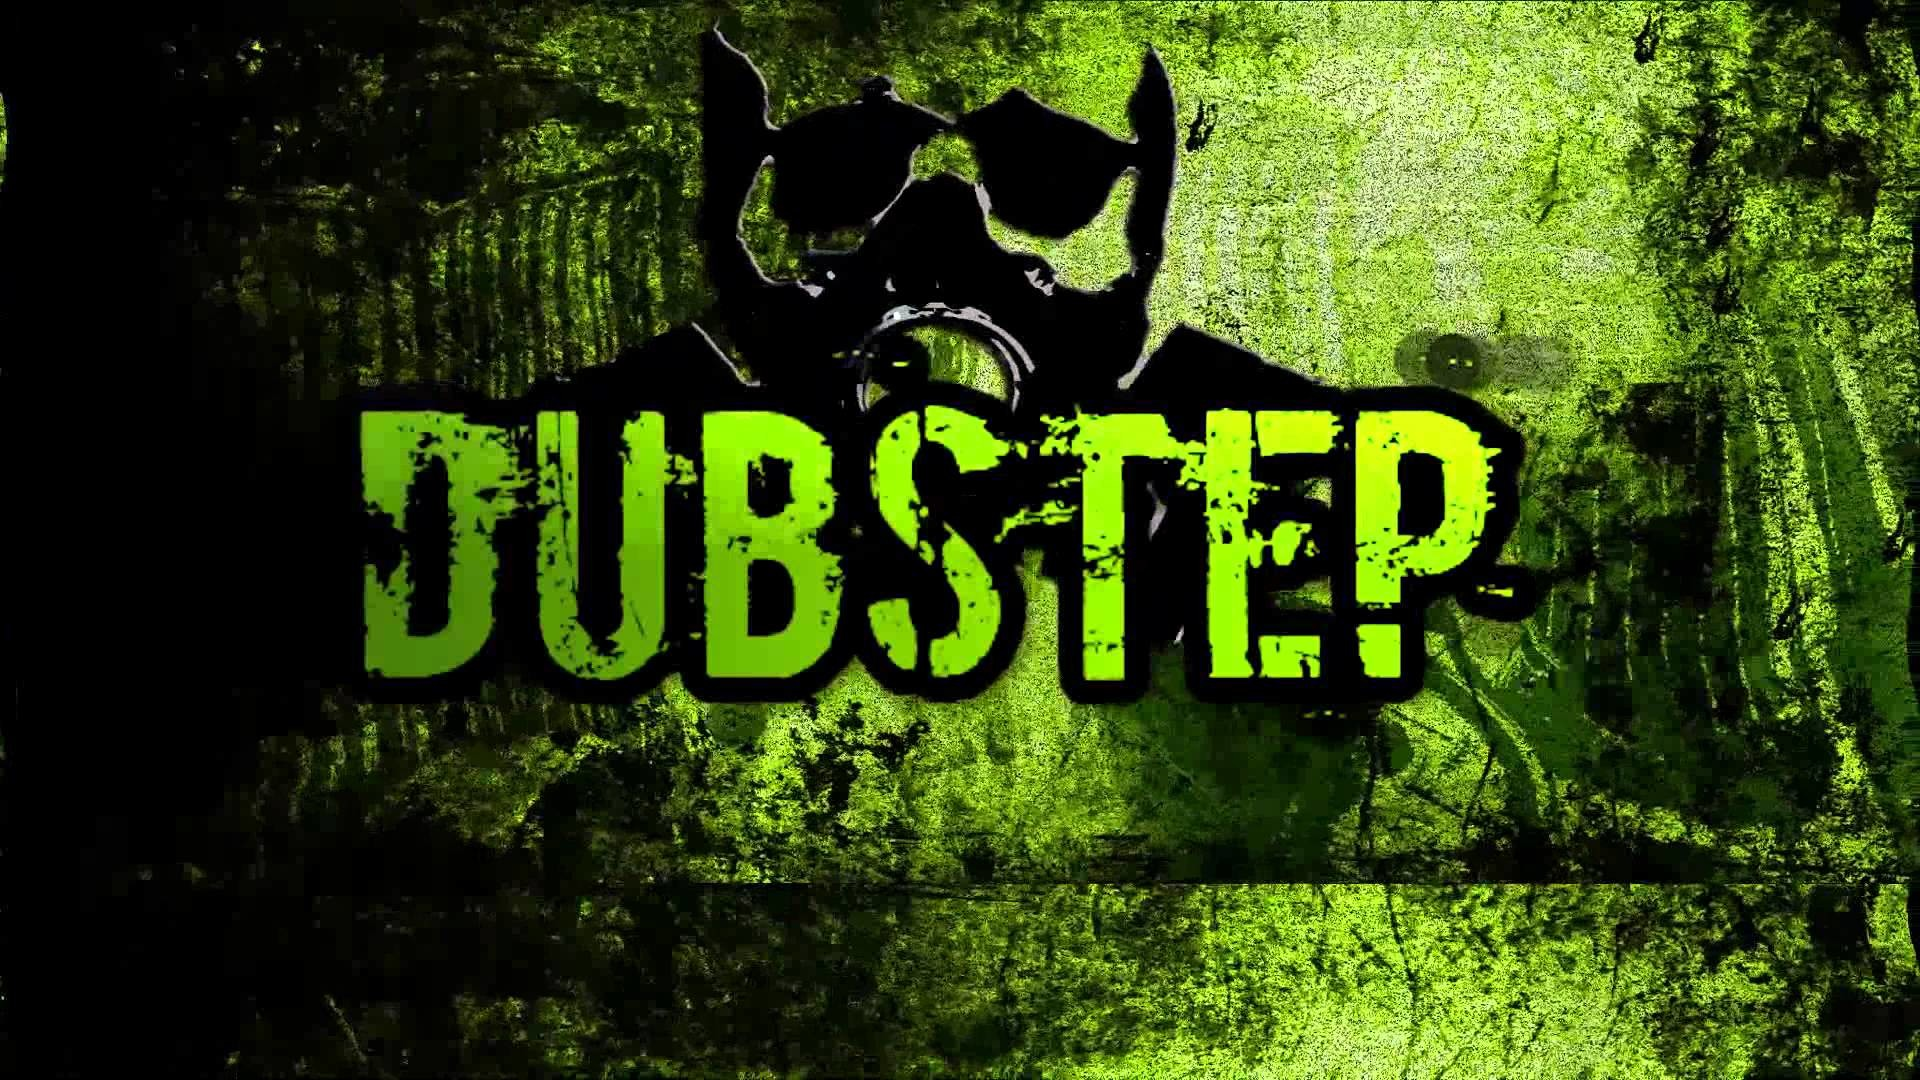 Res: 1920x1080, dubstep wallpaper gas mask  dubstep wallpaper gas mask red